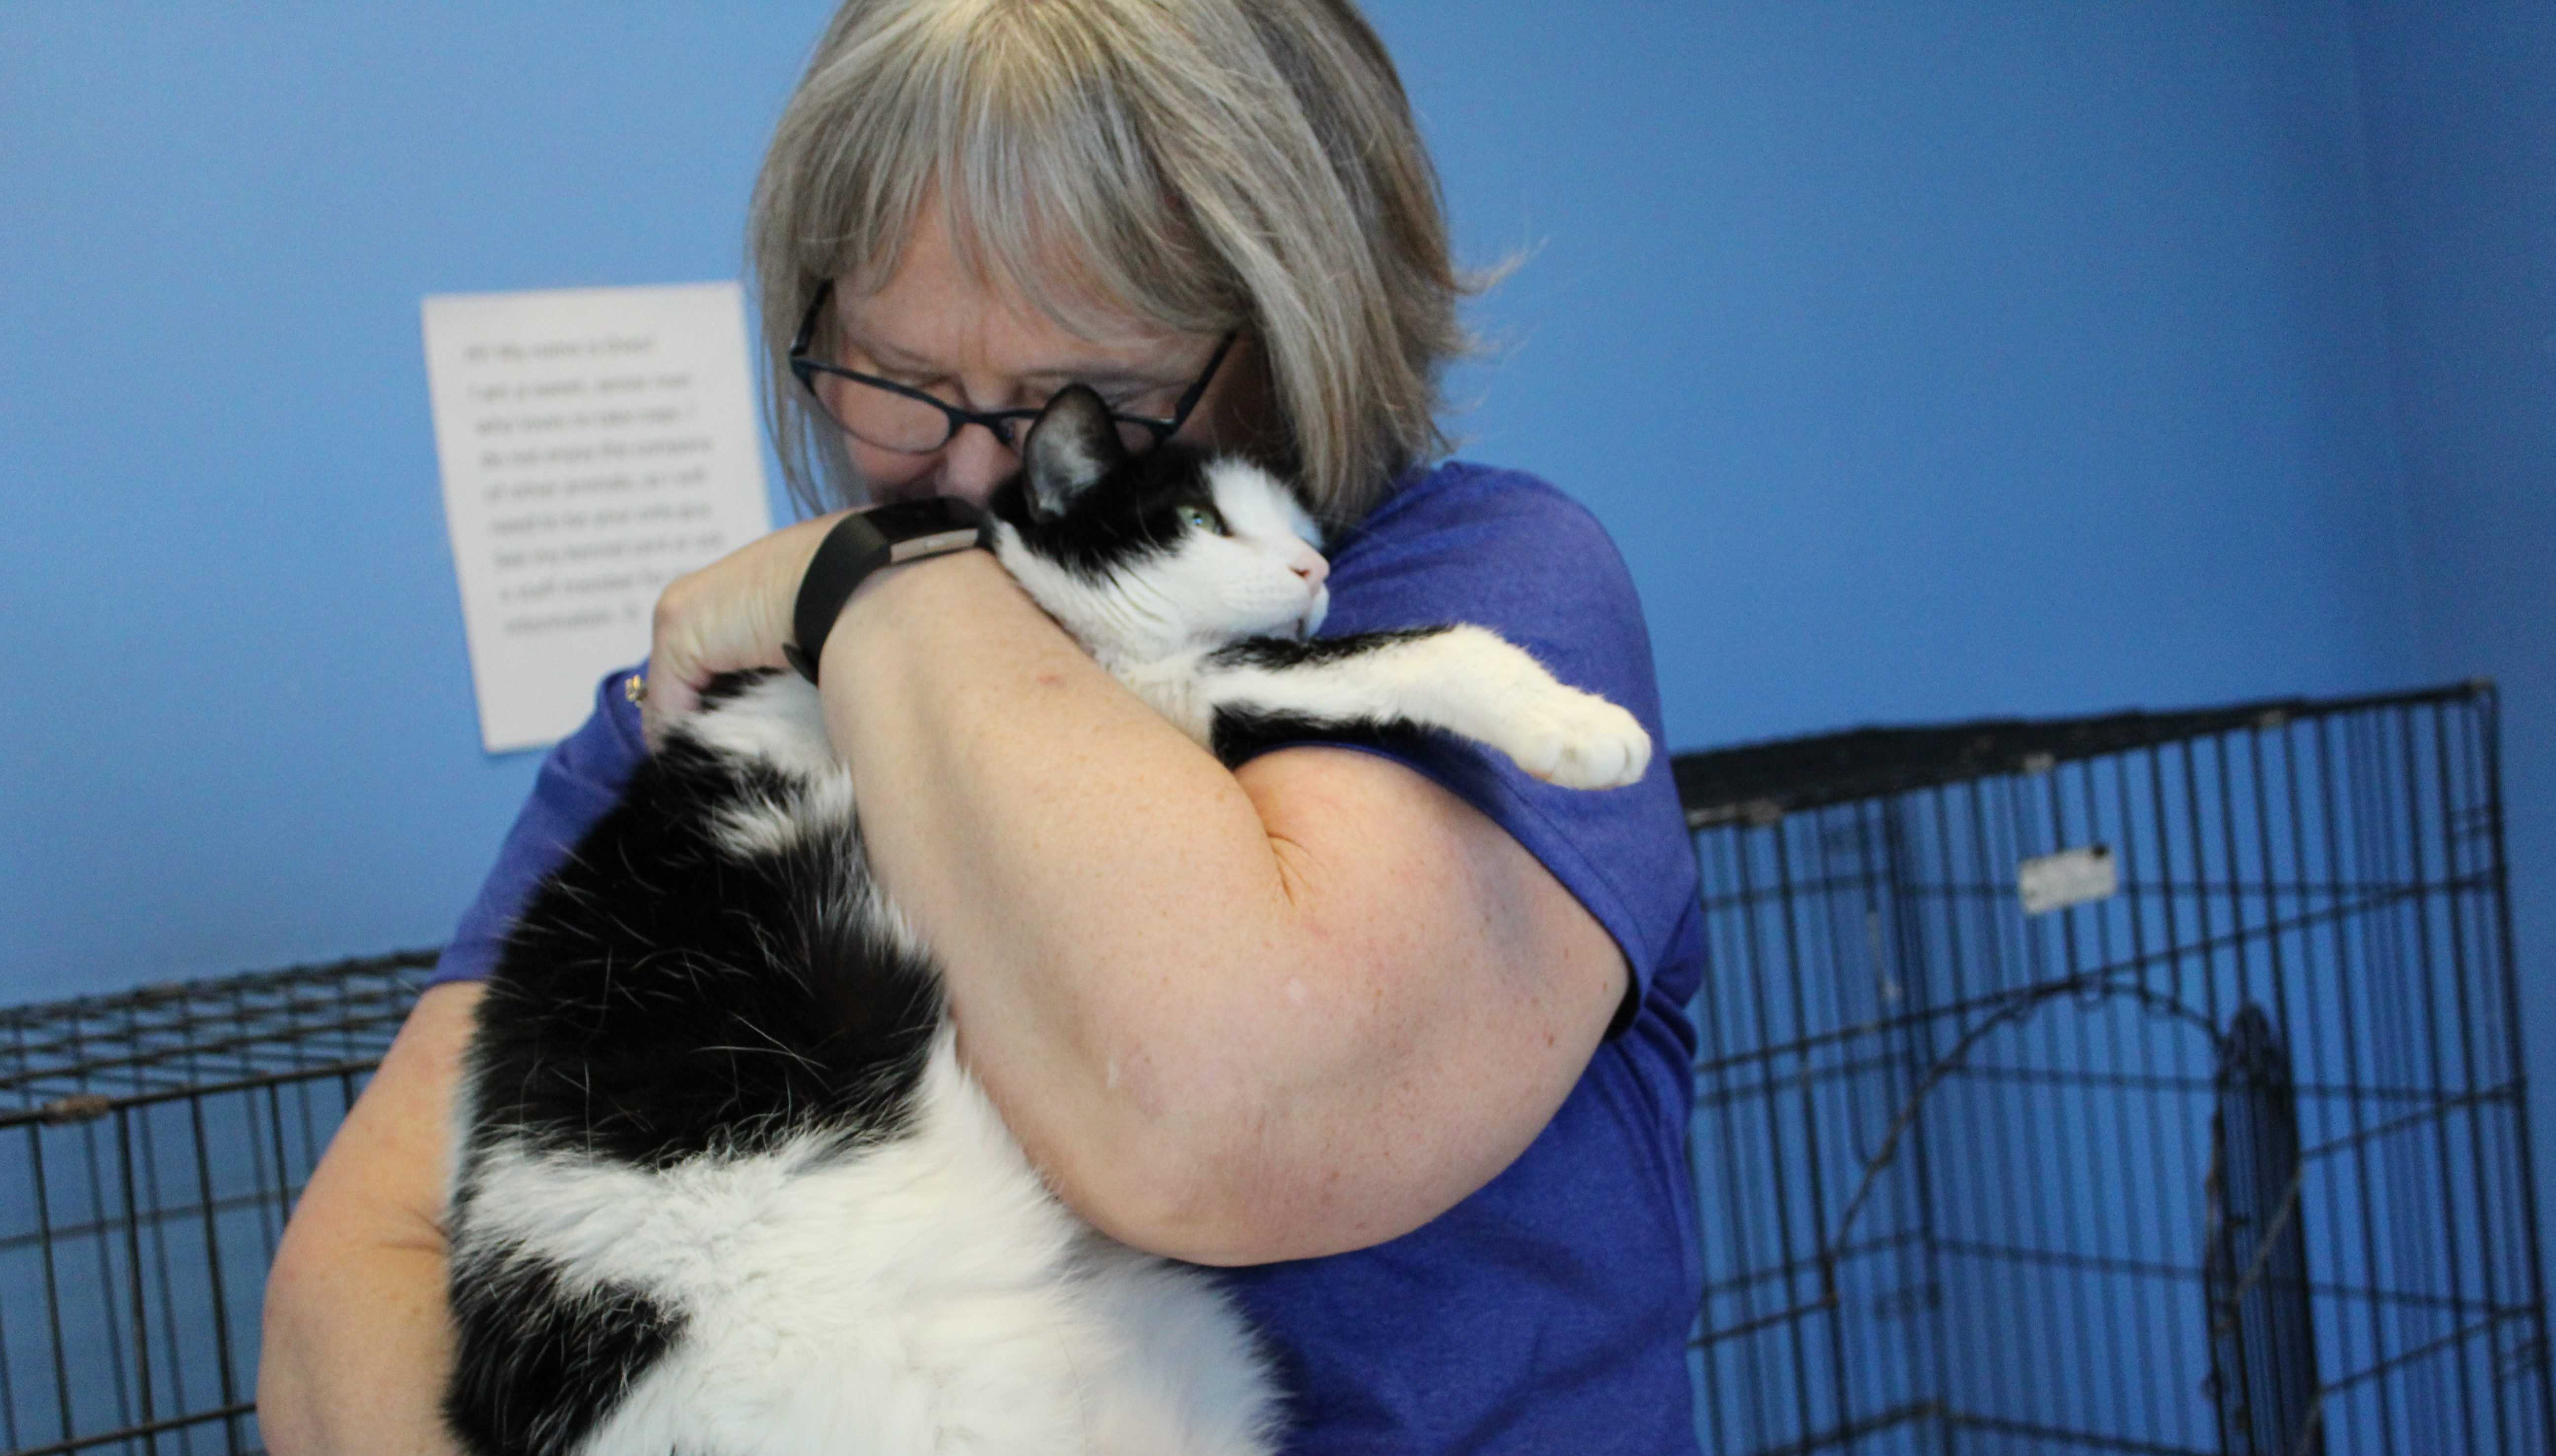 JENNY NGUYEN A caretaker hugs Oreo Wednesday, Jan. 17. Oreo doesn't do well around other cats and has been at the Brookings Regional Humane Society for quite some time. The Brookings Regional Humane Society is located at 120 W Second St S, Brookings, SD 57006.